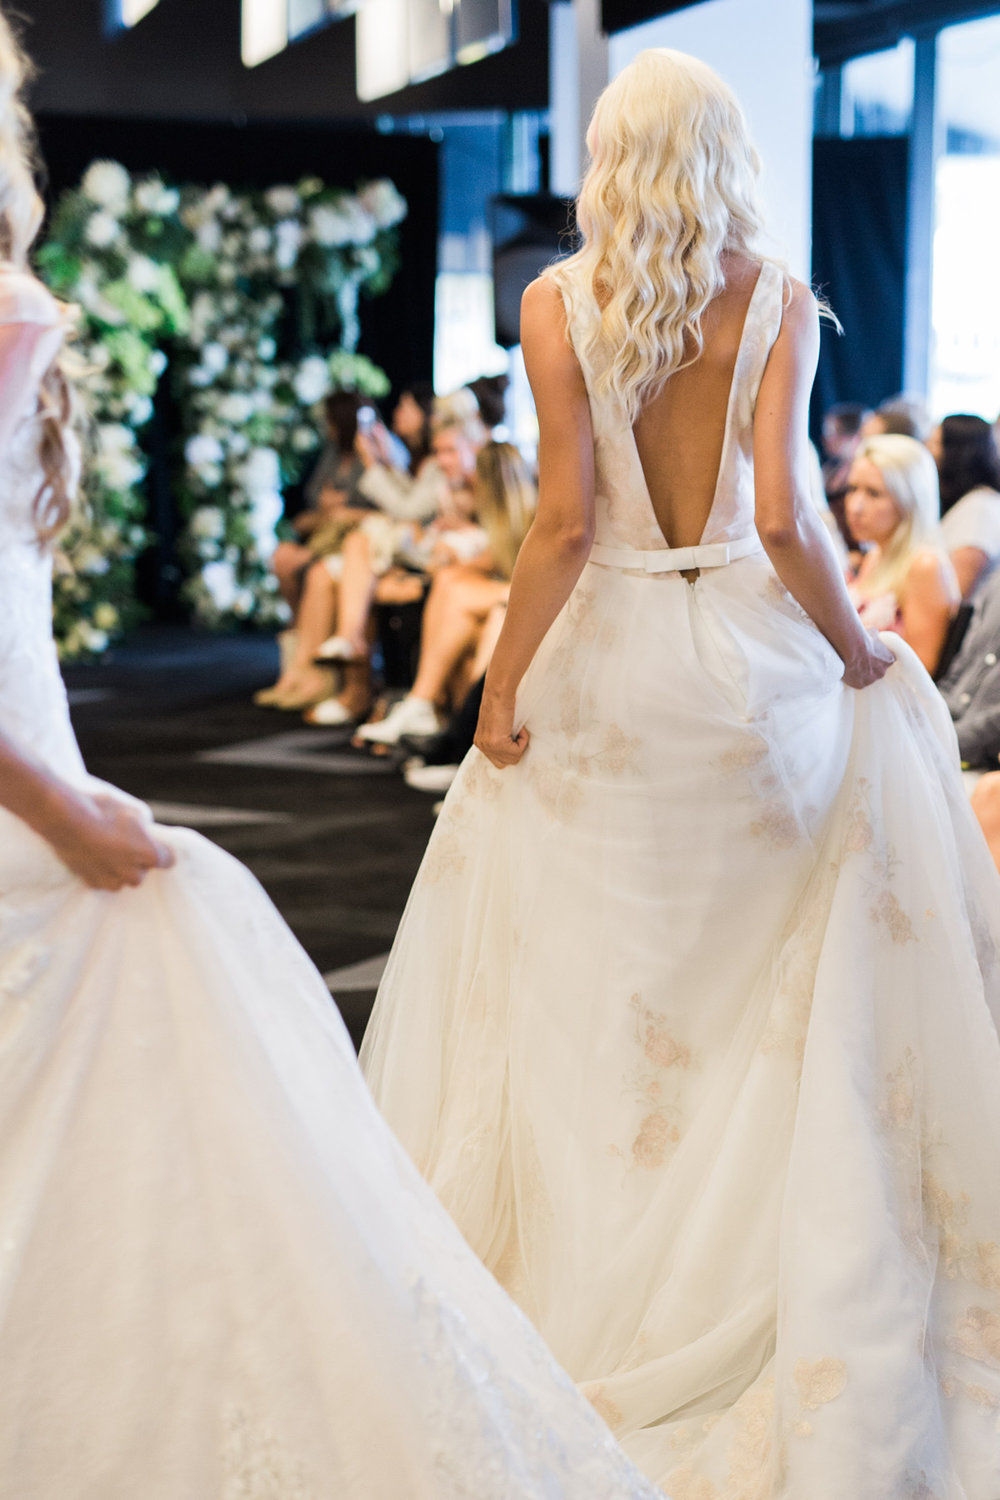 Love-Wedding-Festival-Sydney-Wedding-Gown-Jean-Fox-Bridal-22.jpg